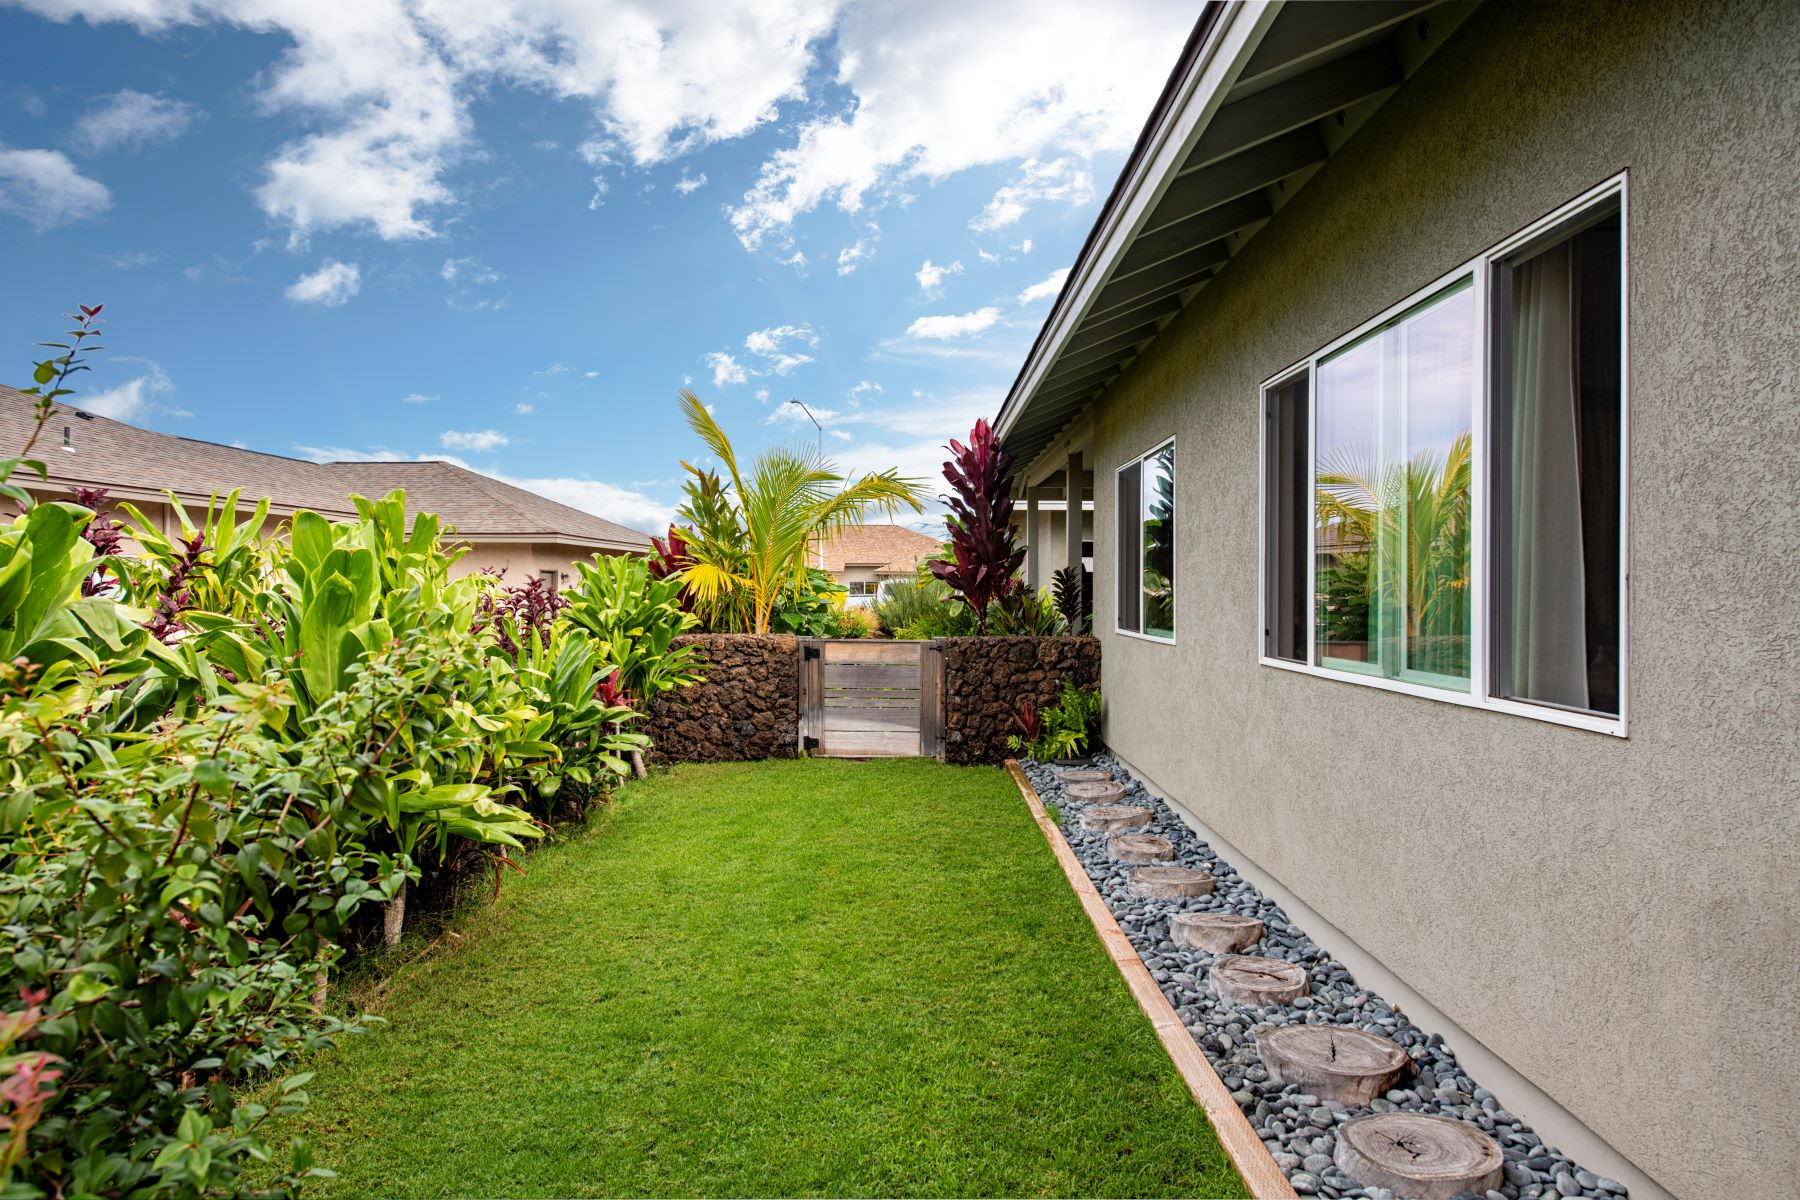 Single Family Homes for Sale at 68-1674 Meipala Pl , Waikoloa, HI 96738 68-1674 Meipala Pl Waikoloa, Hawaii 96738 United States